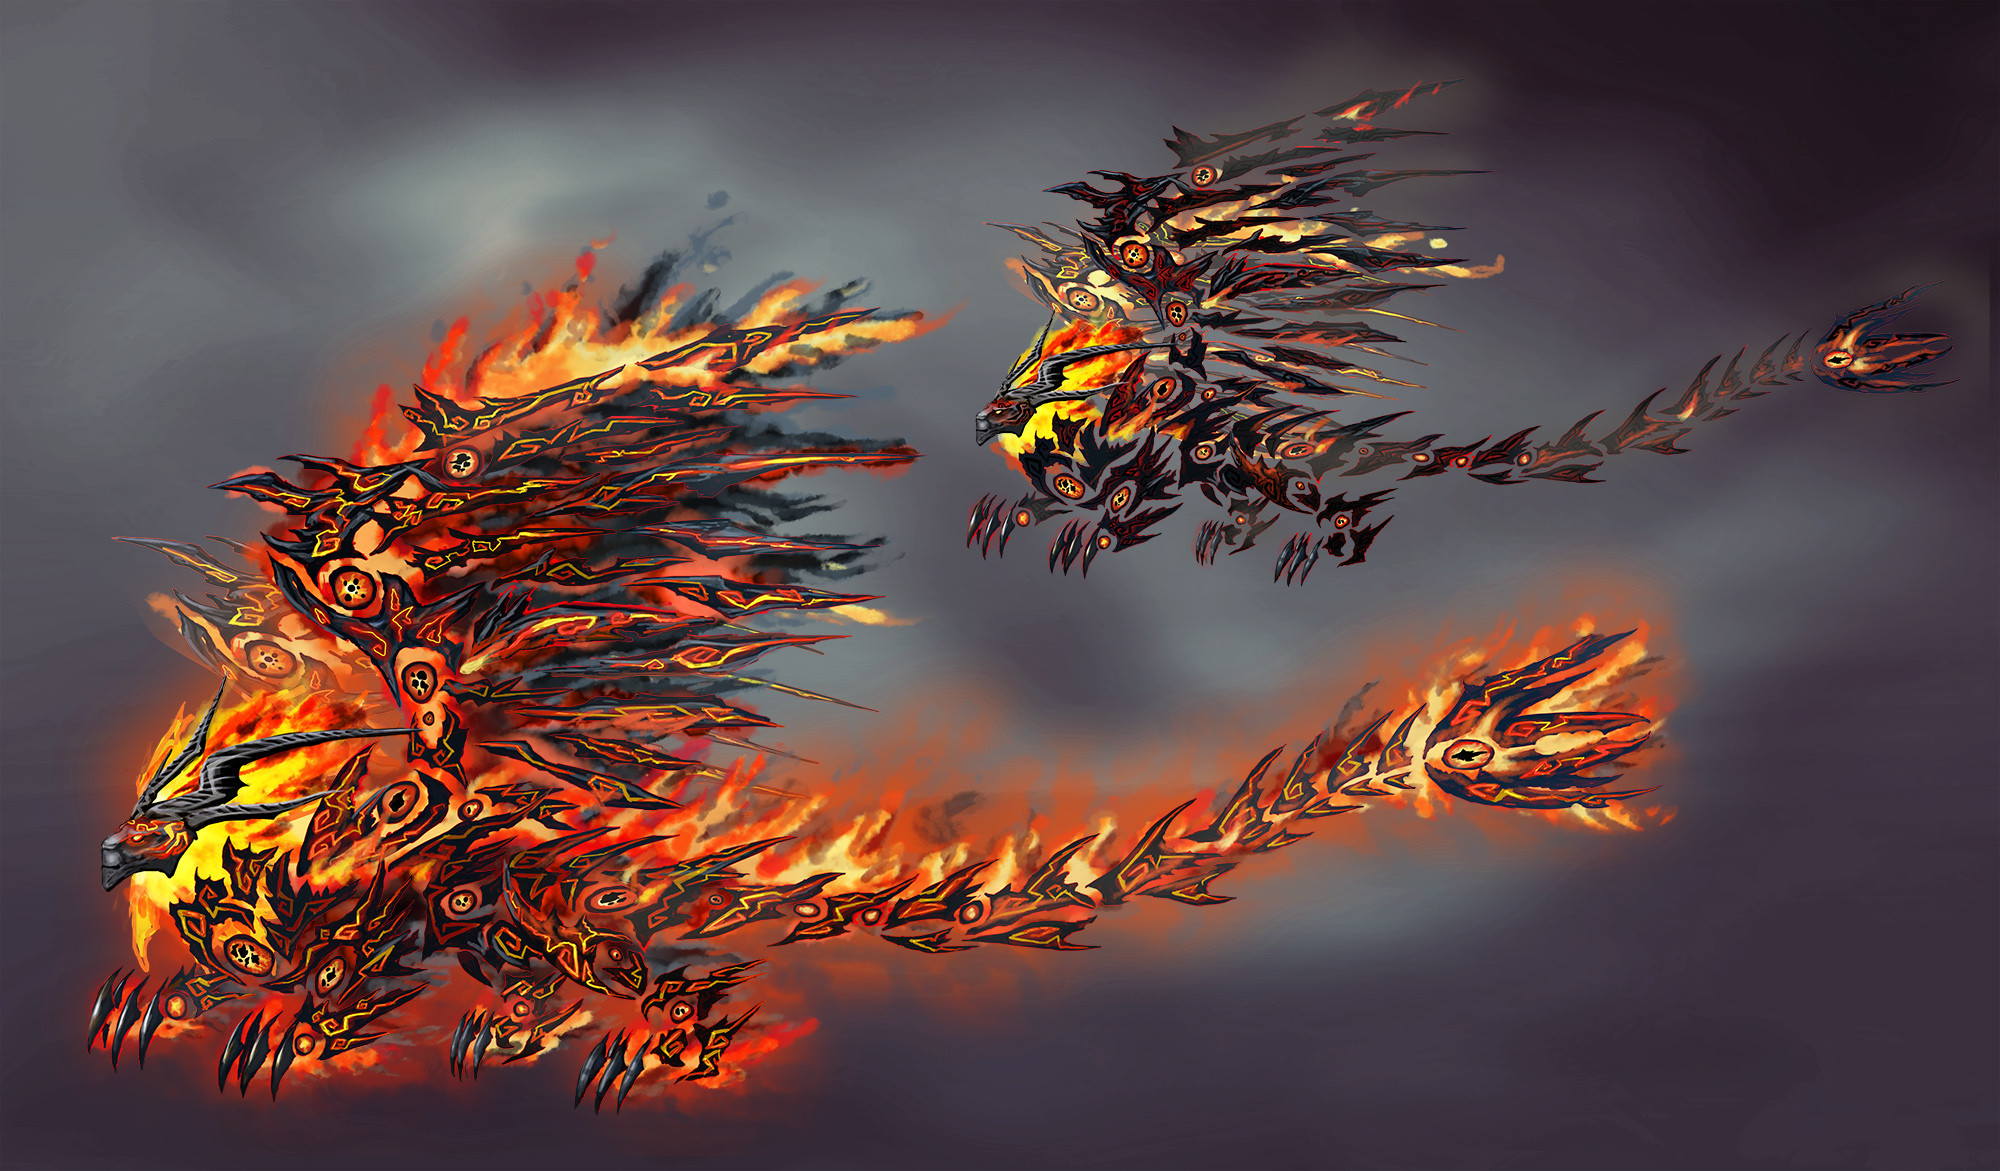 Final concept for the fire lion